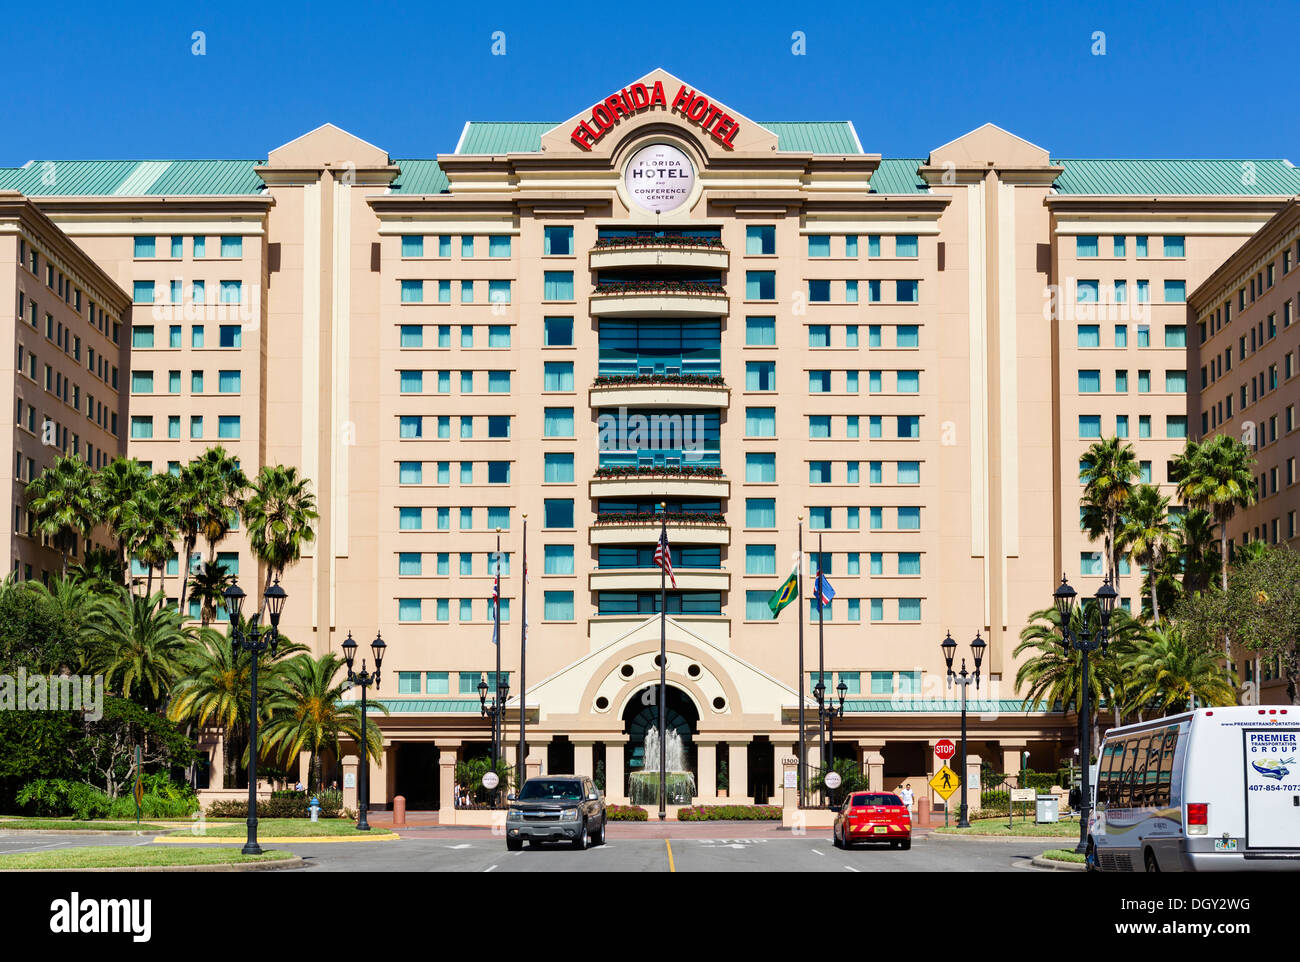 Florida Conference Hotel